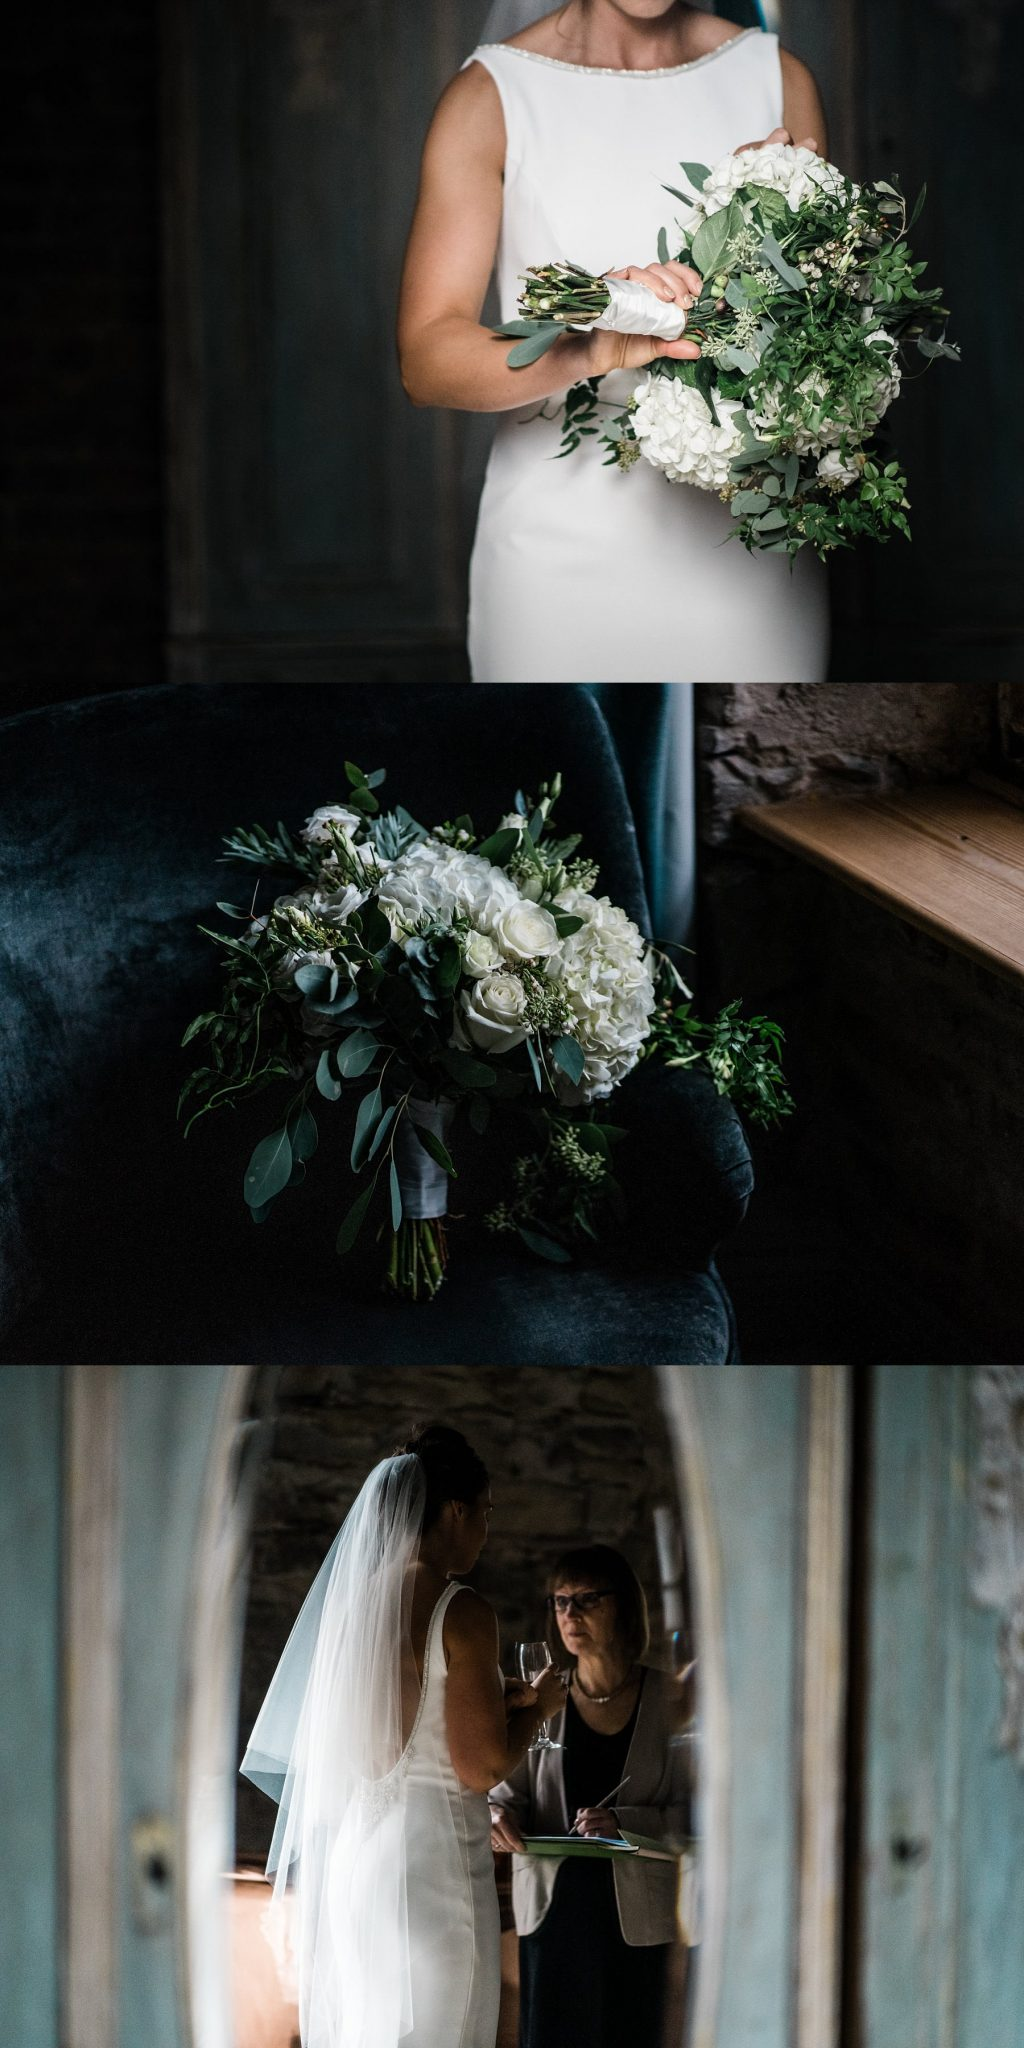 Bridal preparations Le petite Chateau wedding - North East Wedding Photographer